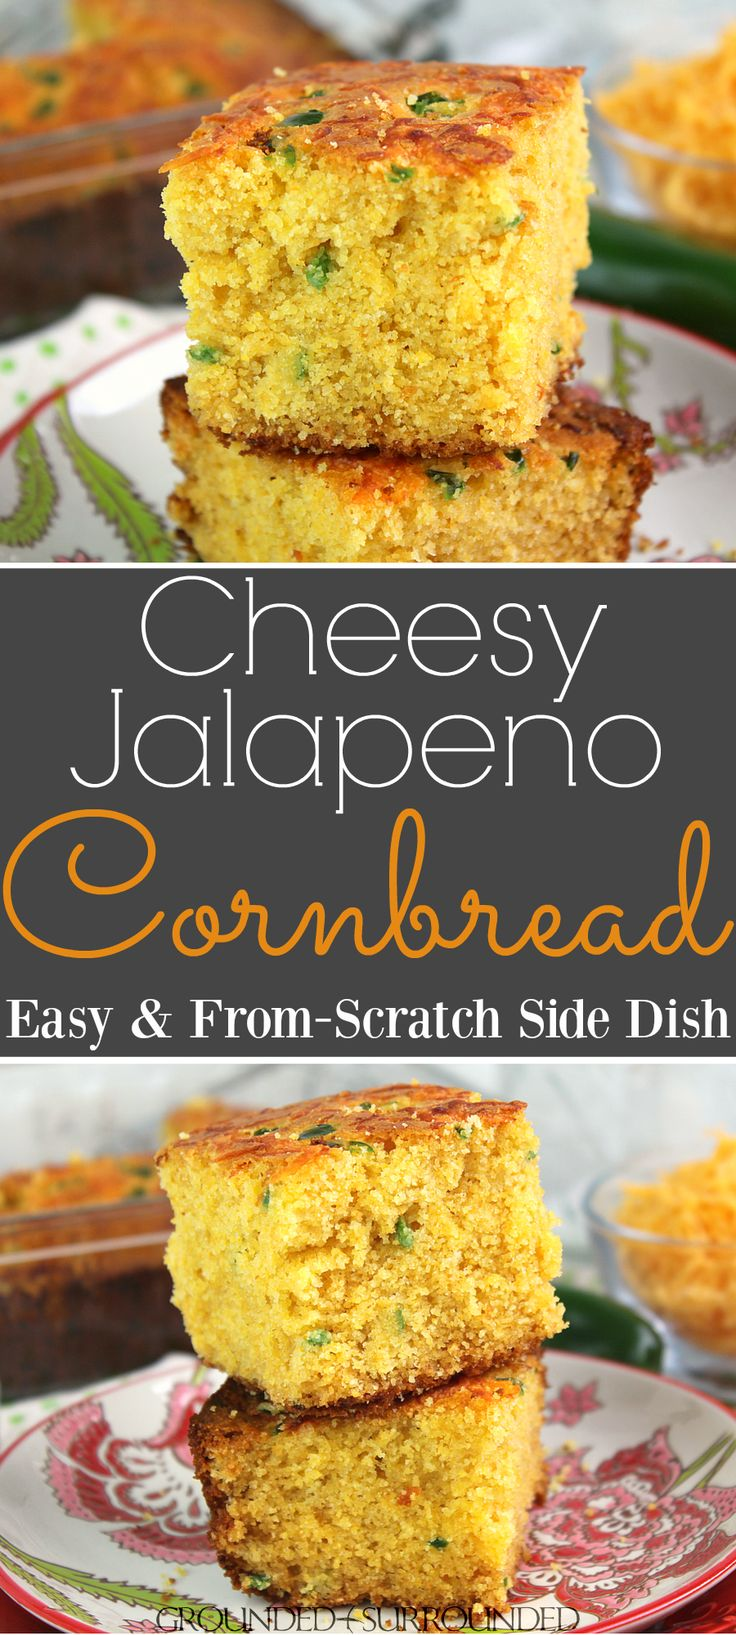 The BEST Cheesy Jalapeno Cornbread | This from scratch recipe is easy to prepare and full of flavor. Shredded cheddar cheese, diced jalapenos, honey, and butter comprise this classic side dish. Serve this corn bread for dinner with a chili, soup, or stew. Use white or wheat flour and whole milk or almond milk! #recipes #southern #cornbread